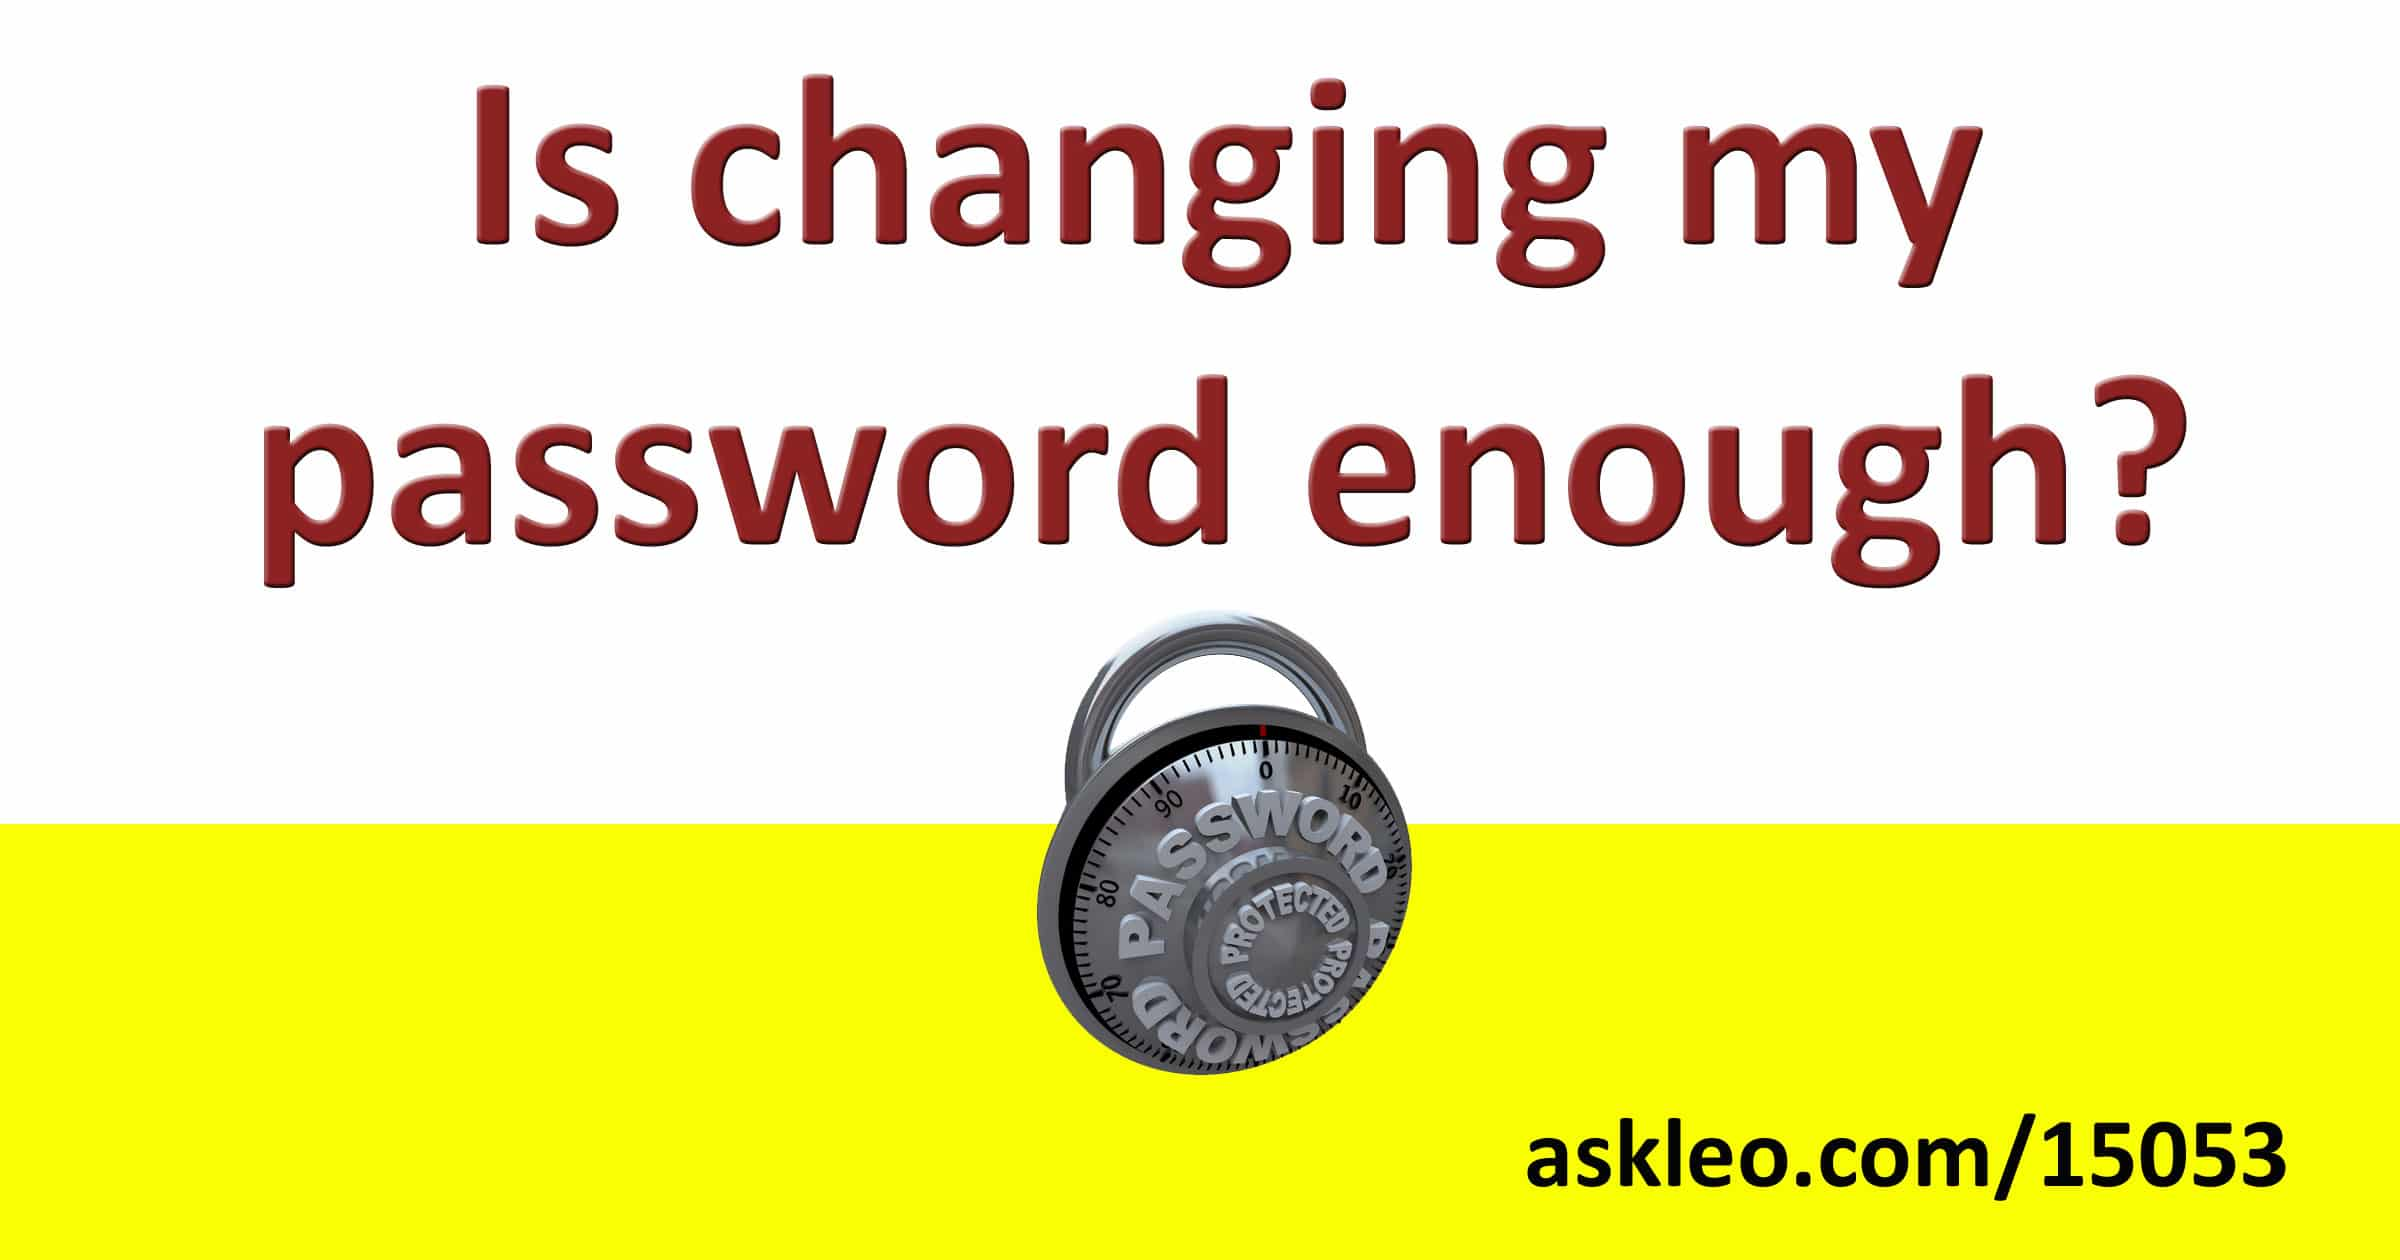 Is changing my password enough?